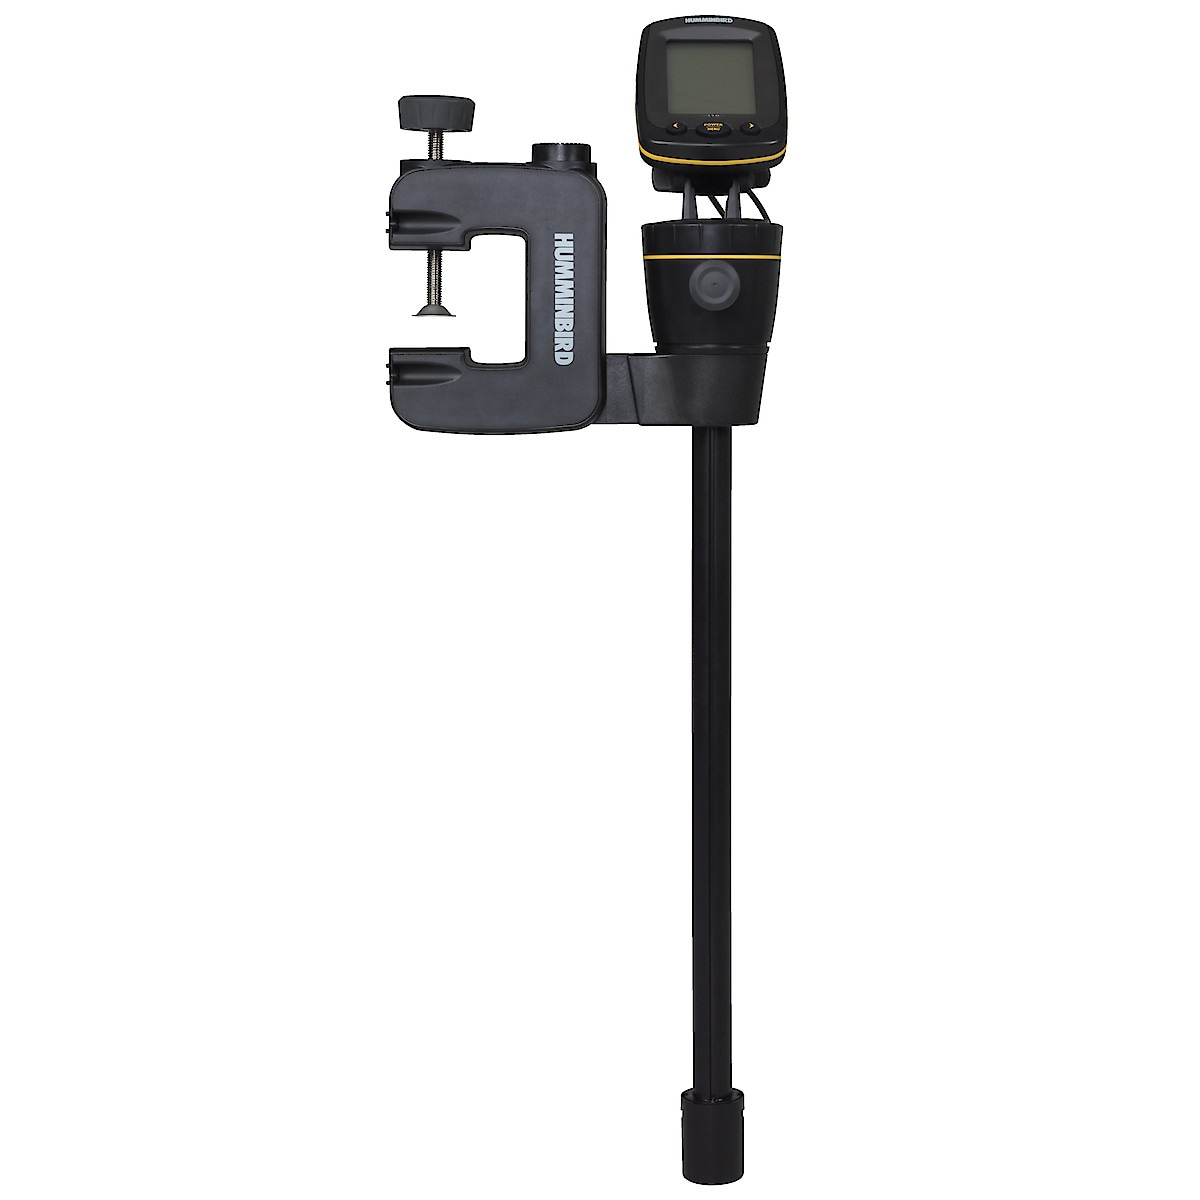 Ekolod Humminbird Fishin' Buddy 110